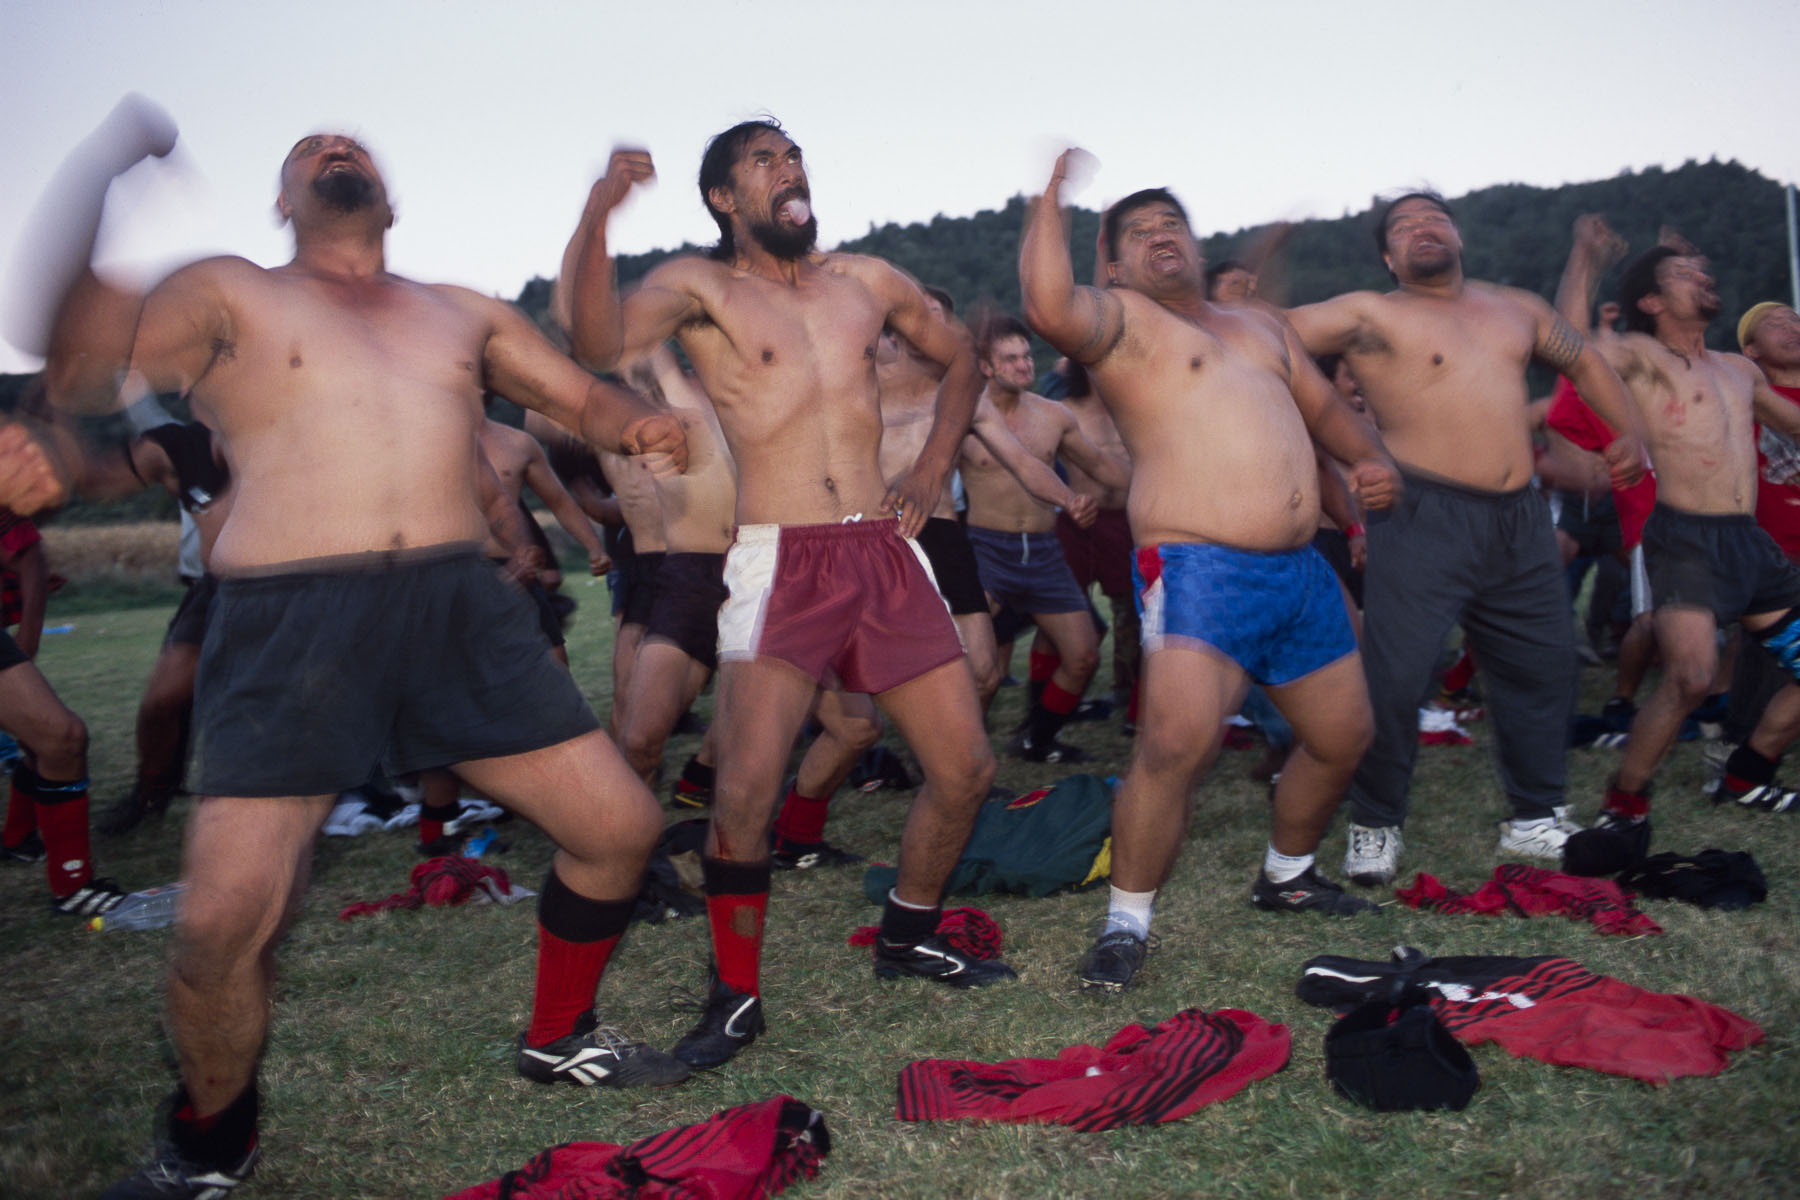 Maoris rugbymen perform haka, a traditional Maori war dance, after a rugby game in May 2000